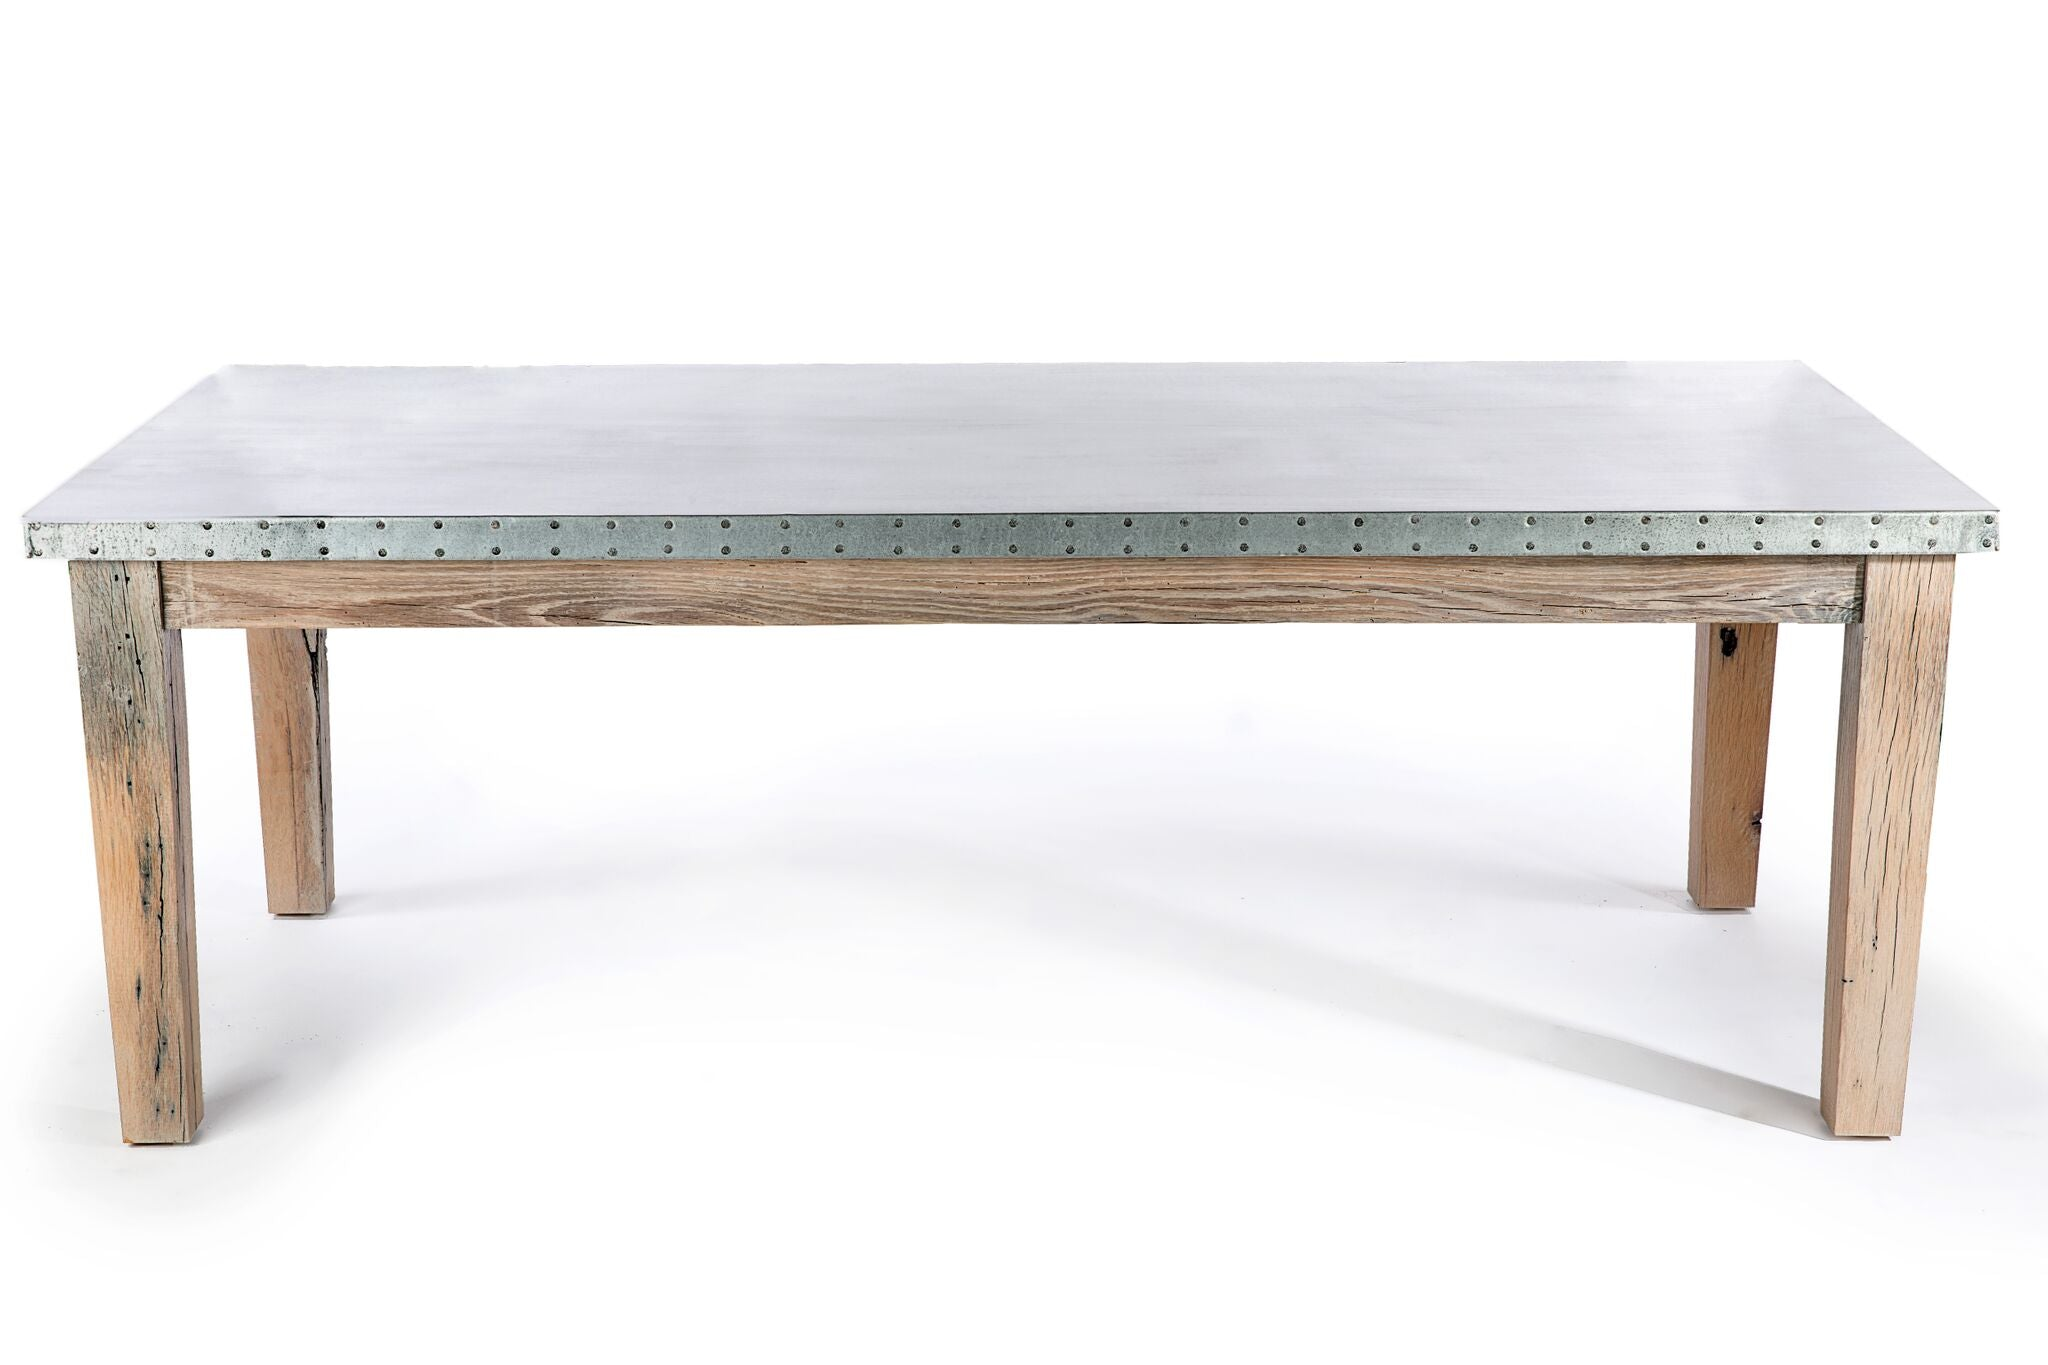 Zinc Rectangular Table | Cambridge Table | CLASSIC | Americana on Reclaimed Oak | CUSTOM SIZE | 2"